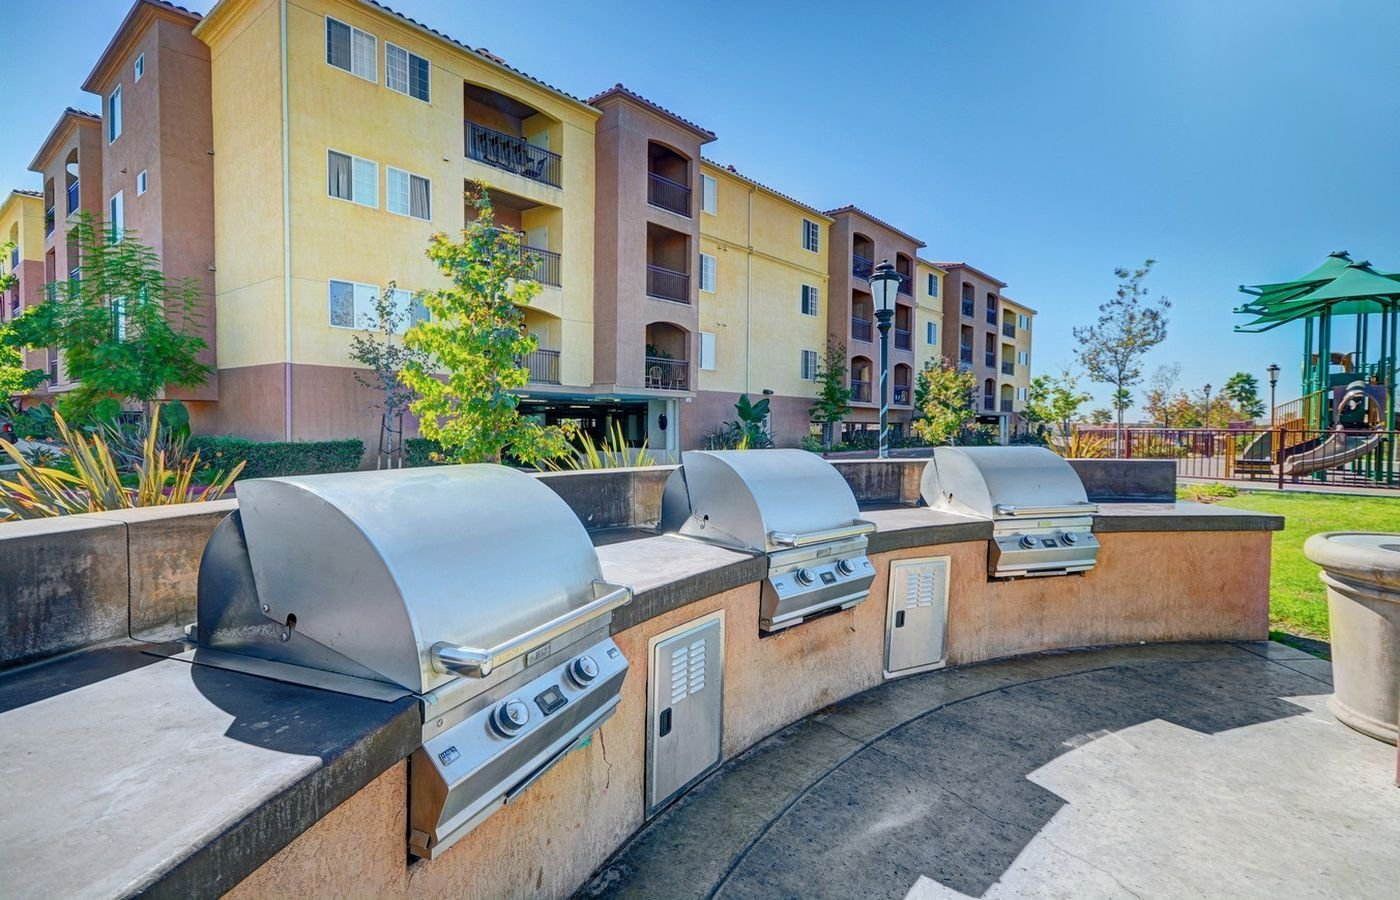 Best 2 Bedroom Apartments San Diego Ca Cheap 2 Bedroom San Diego Apartments For Rent From 300 San With Pictures